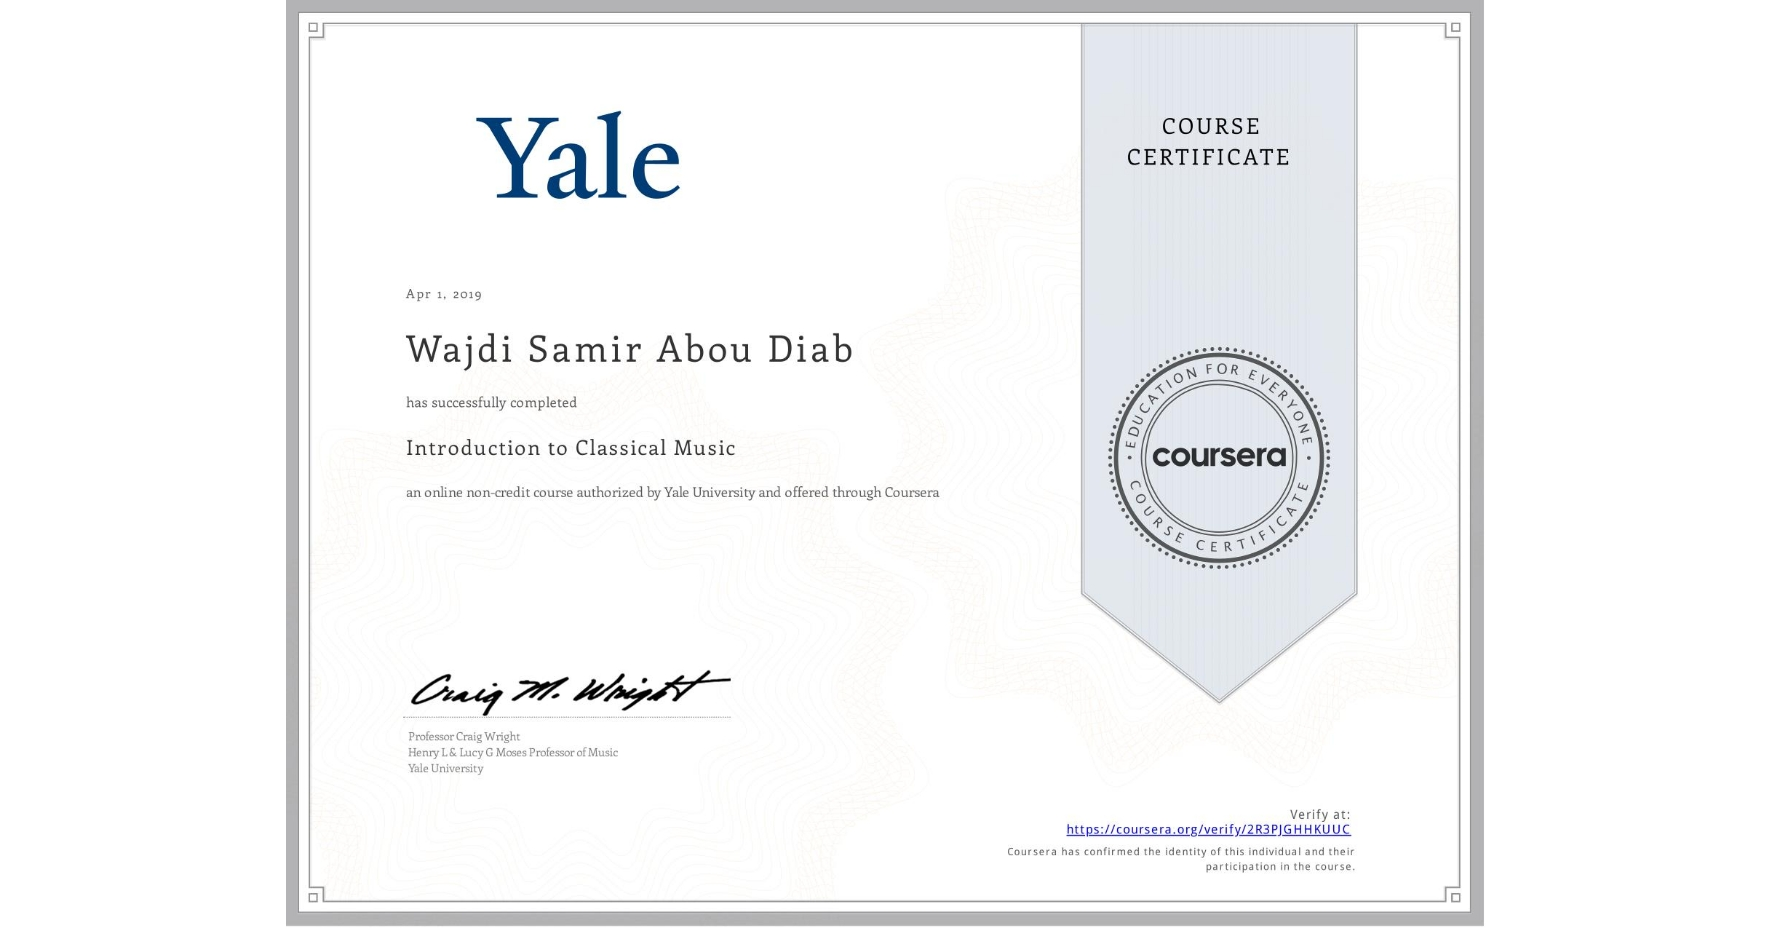 View certificate for Wajdi Samir Abou Diab, Introduction to Classical Music, an online non-credit course authorized by Yale University and offered through Coursera